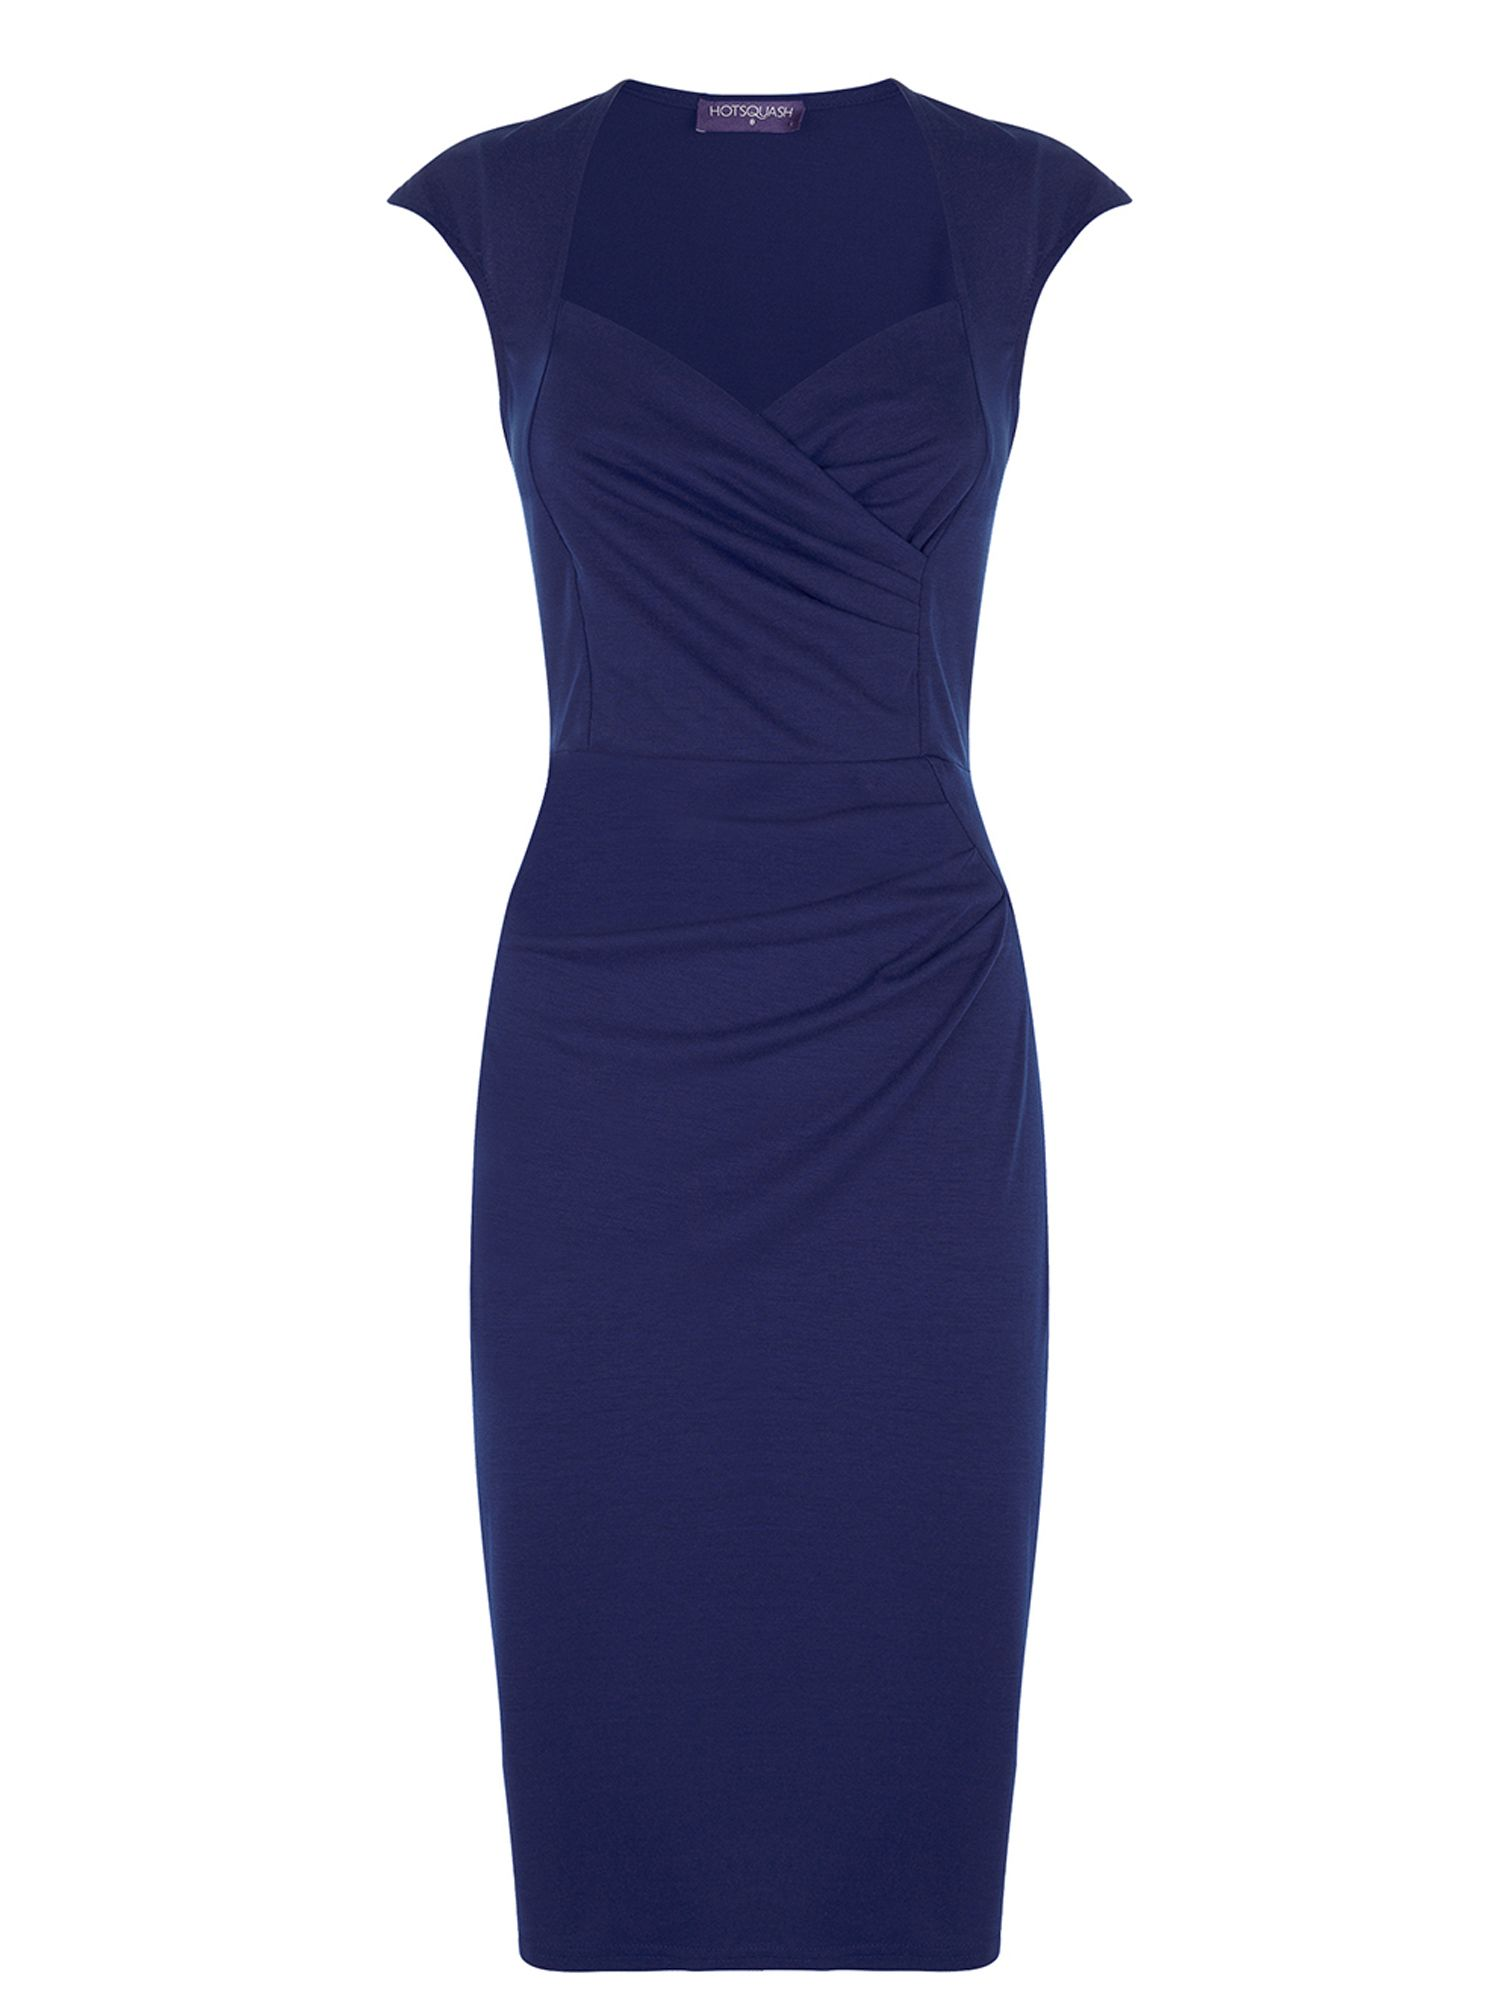 HotSquash Short sleeved dress in clever fabric, Blue